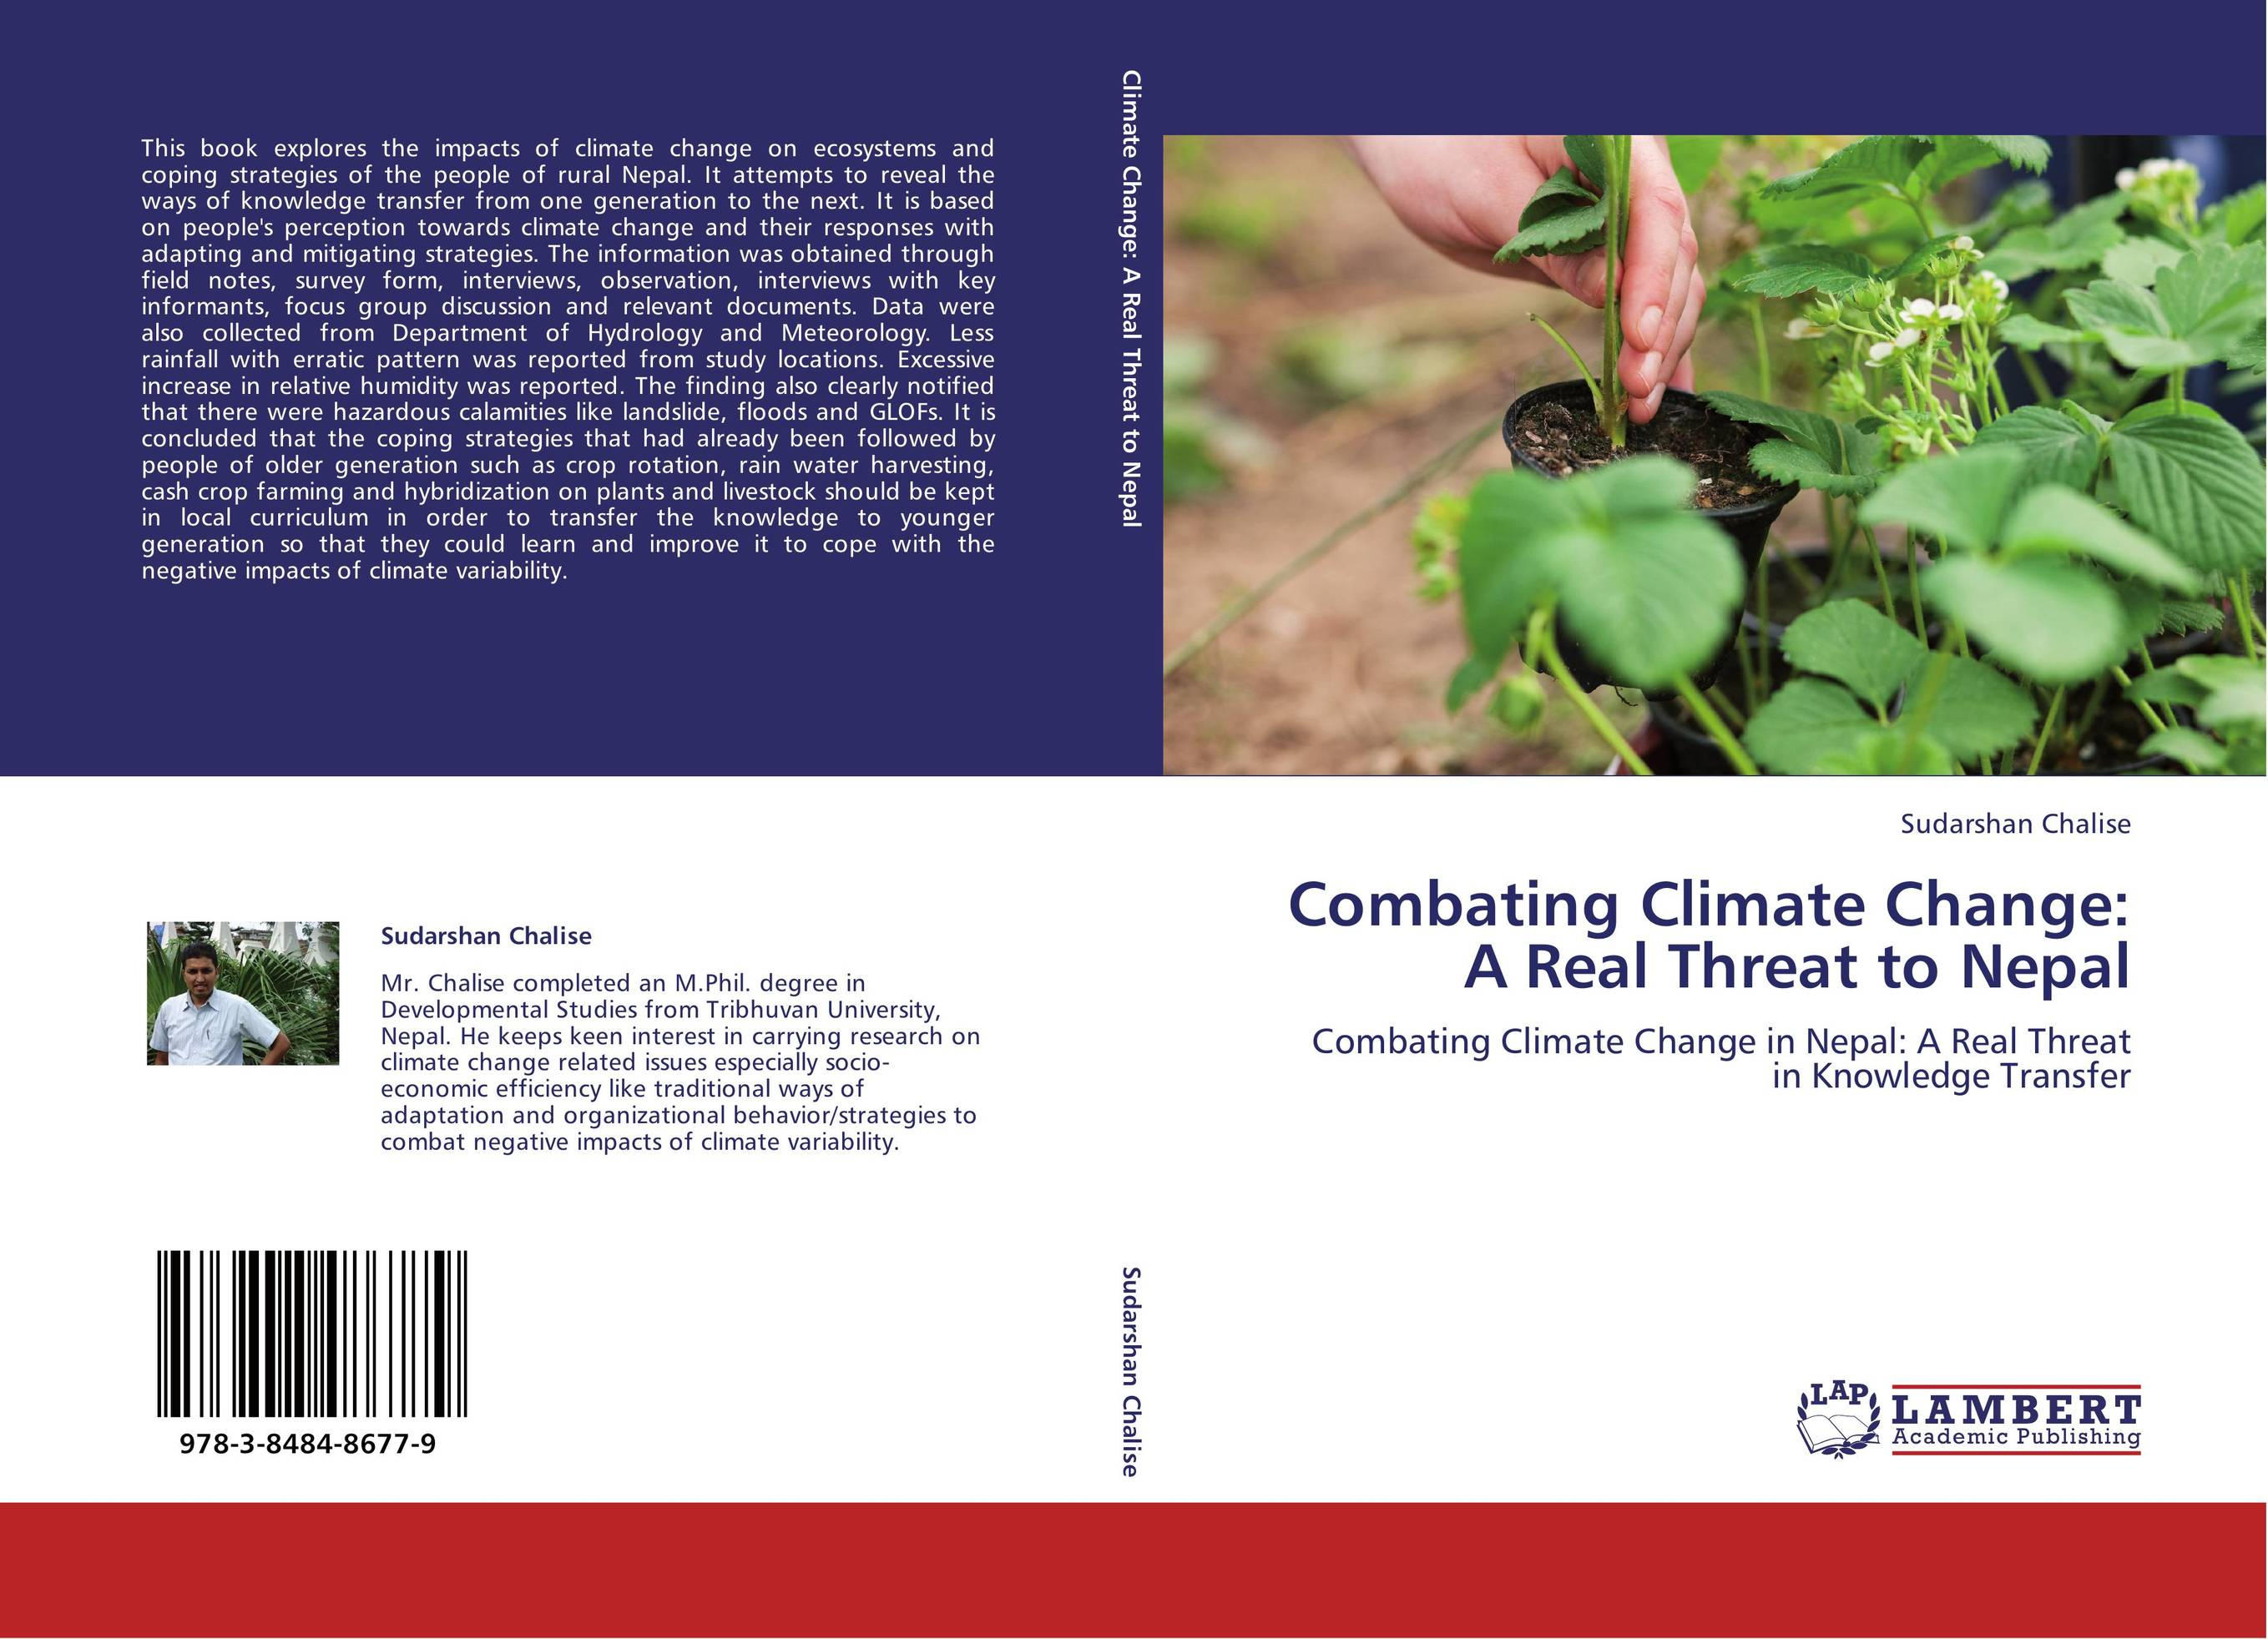 climate change is a minor threat essay Climate change is a change in the statistical distribution of weather patterns when that change lasts for an extended period of time (ie, decades to millions of years) climate change may refer to a change in average weather conditions, or in the time variation of weather within the context of longer-term average conditions.